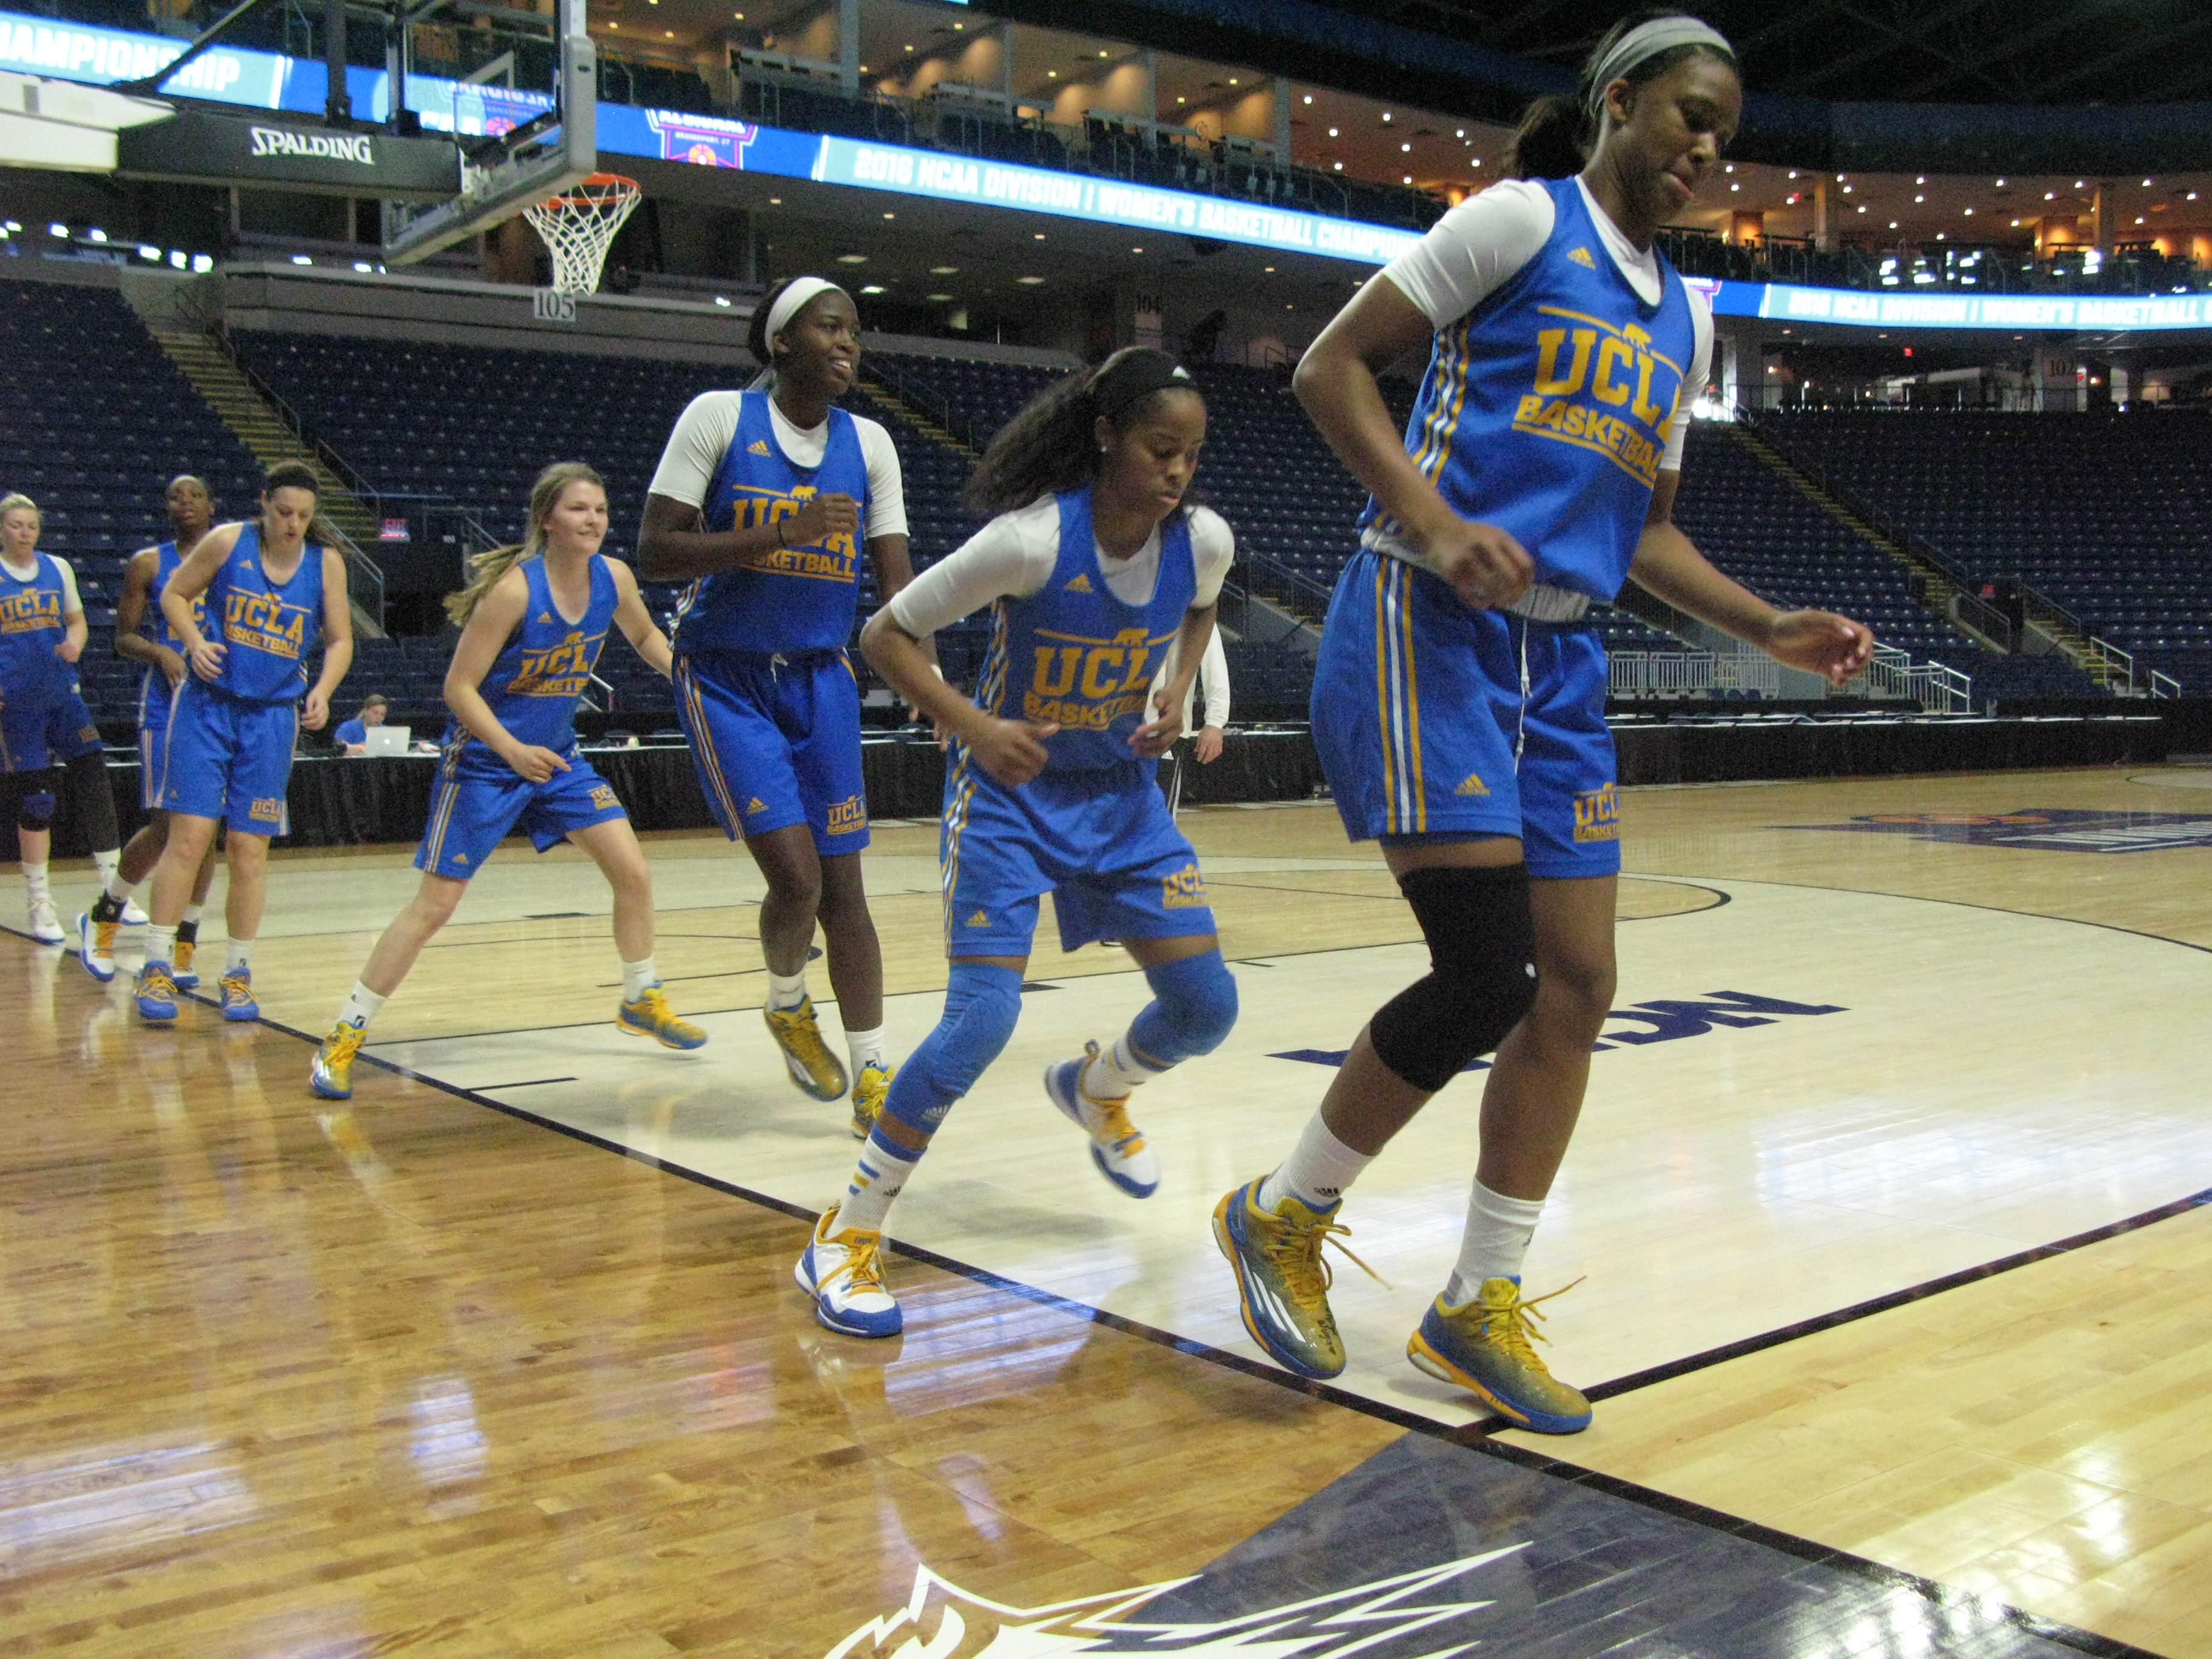 The UCLA women's basketball team warms up before practice on Friday, March 25, 2016, at Webster Bank Arena in Bridgeport, Conn. The Bruins are to face Texas on Saturday in the regional semifinals of the NCAA Tournament. (AP Photo/Pat Eaton-Robb)